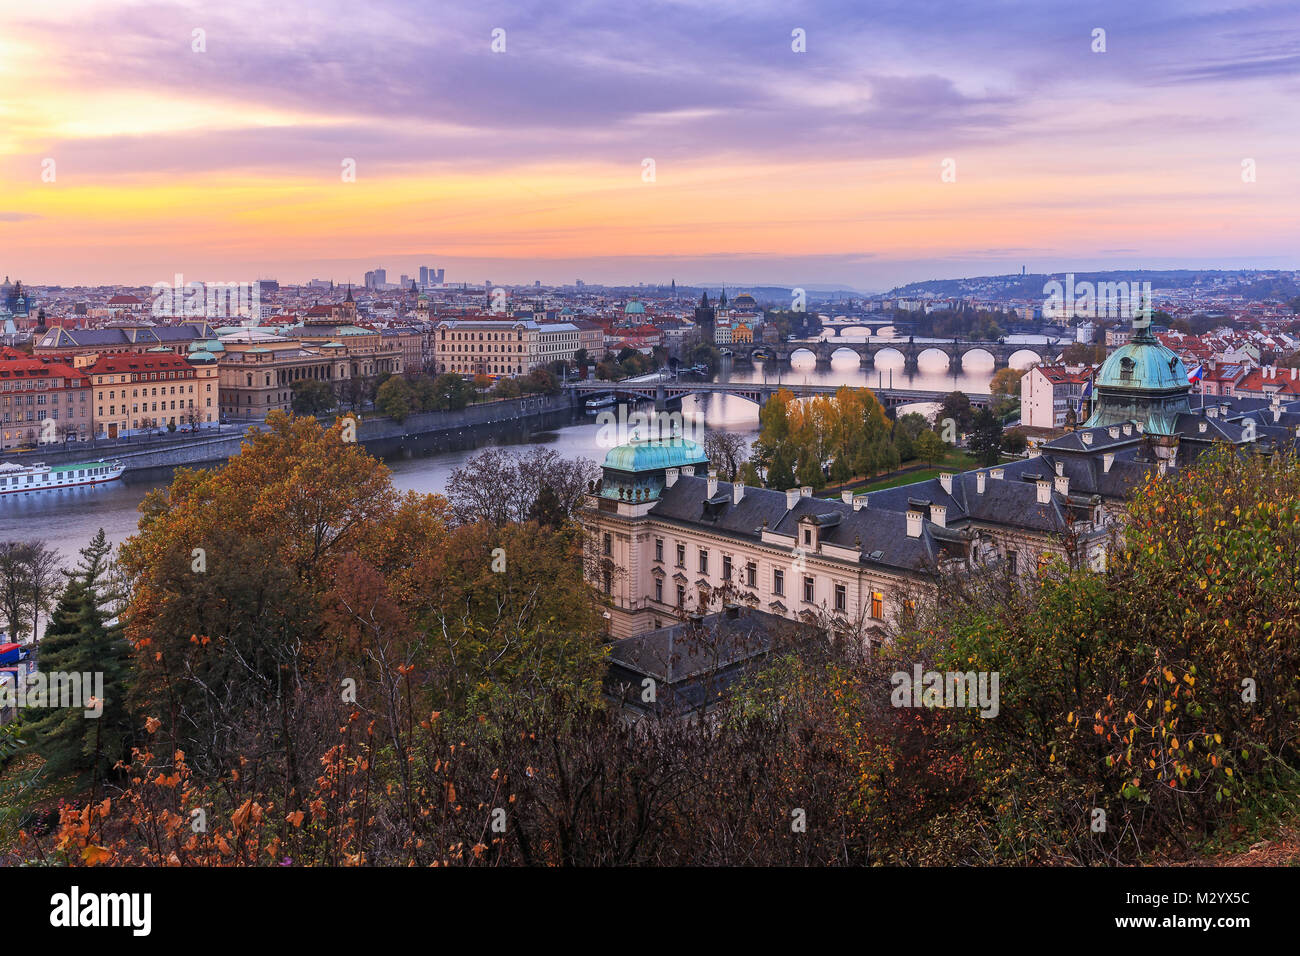 View over Prague from the Metronome - Stock Image